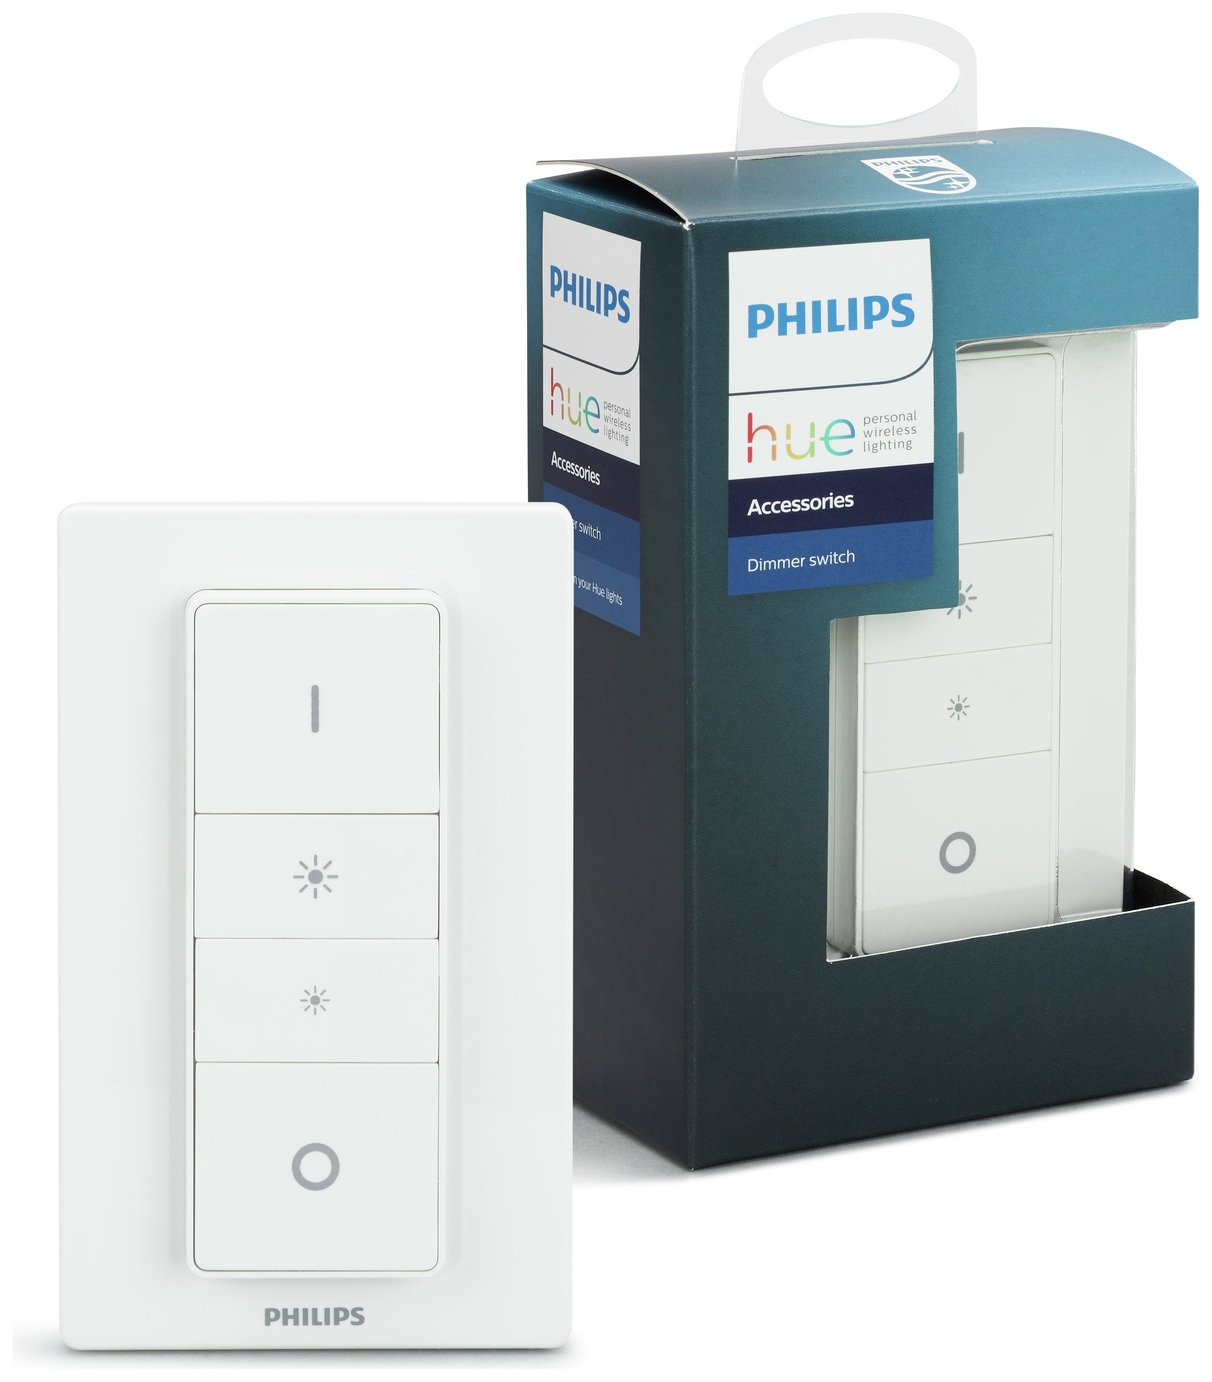 Philips Hue Dimmer Switch from Philips